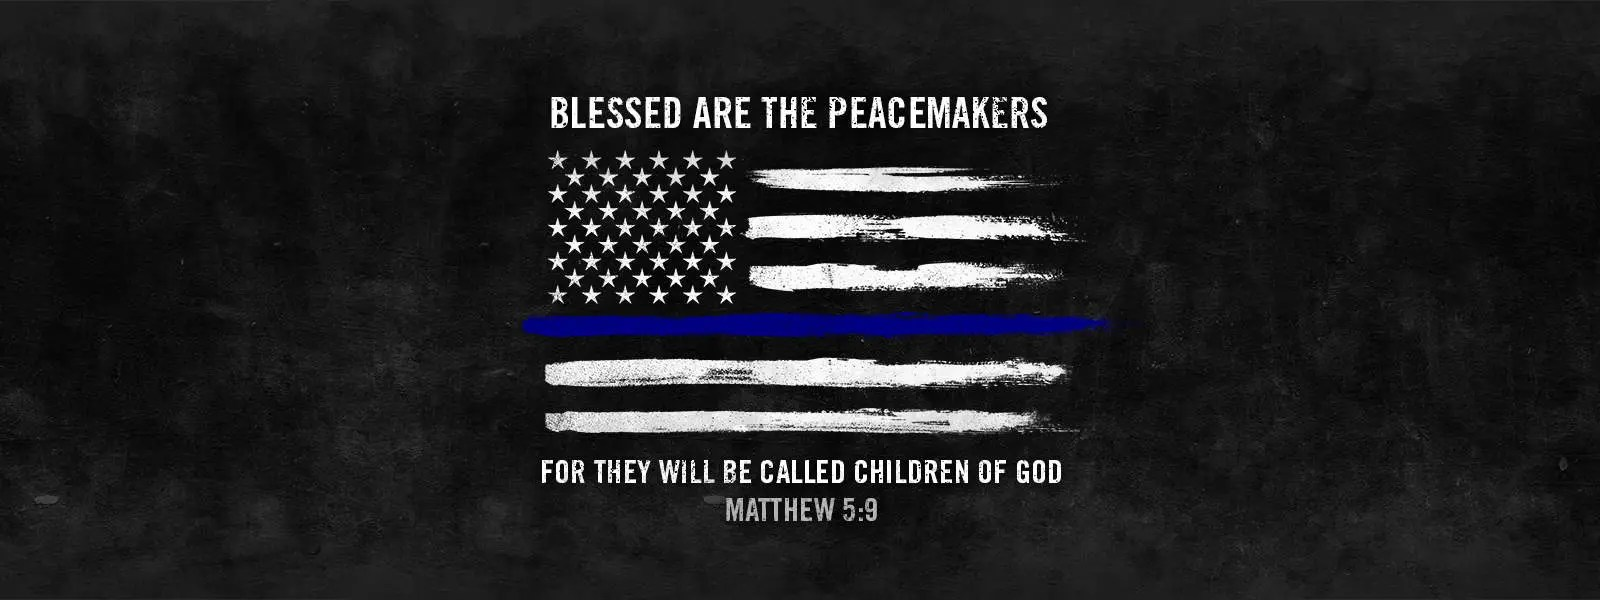 Blessed are the Peacemakers for they Will be Called Children of God - Matthewe 5:9